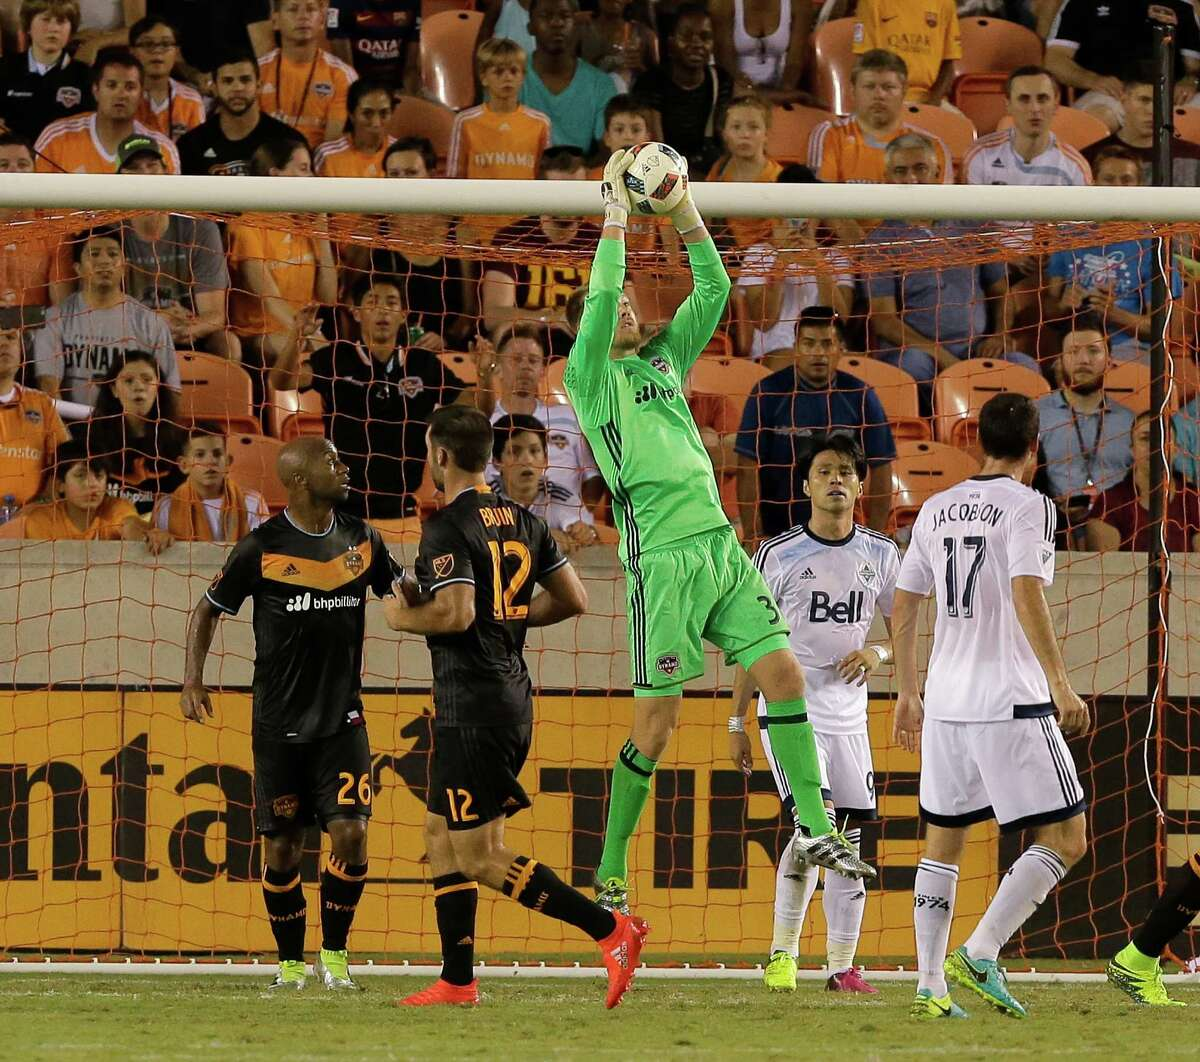 Houston Dynamo goalkeeper Joe Willis (31) makes save as Vancouver Whitecaps midfielder Andrew Jacobson (17) watches the second half during an MLS soccer match Saturday, July 23, 2016, in Houston. Houston and Vancouver played to scoreless draw. (AP Photo/Bob Levey)